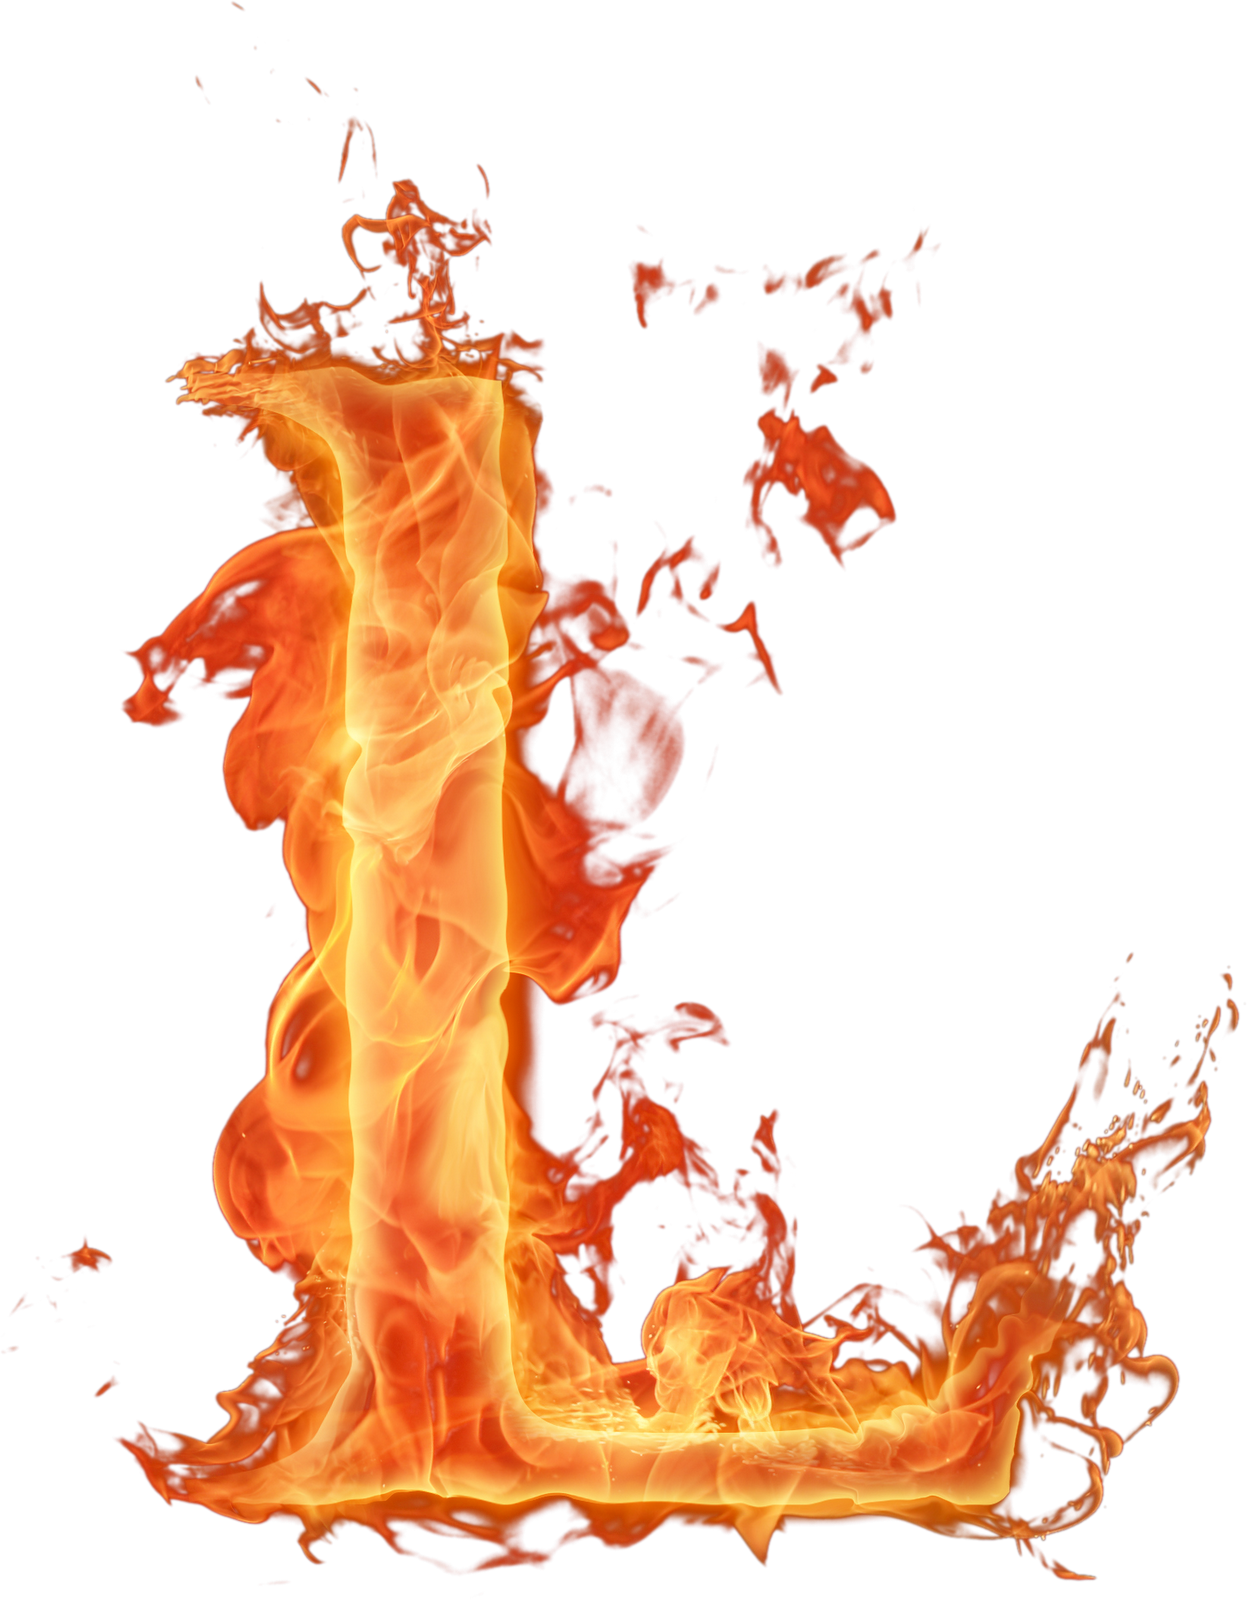 Fuego gif png. Letras fogo chama fire